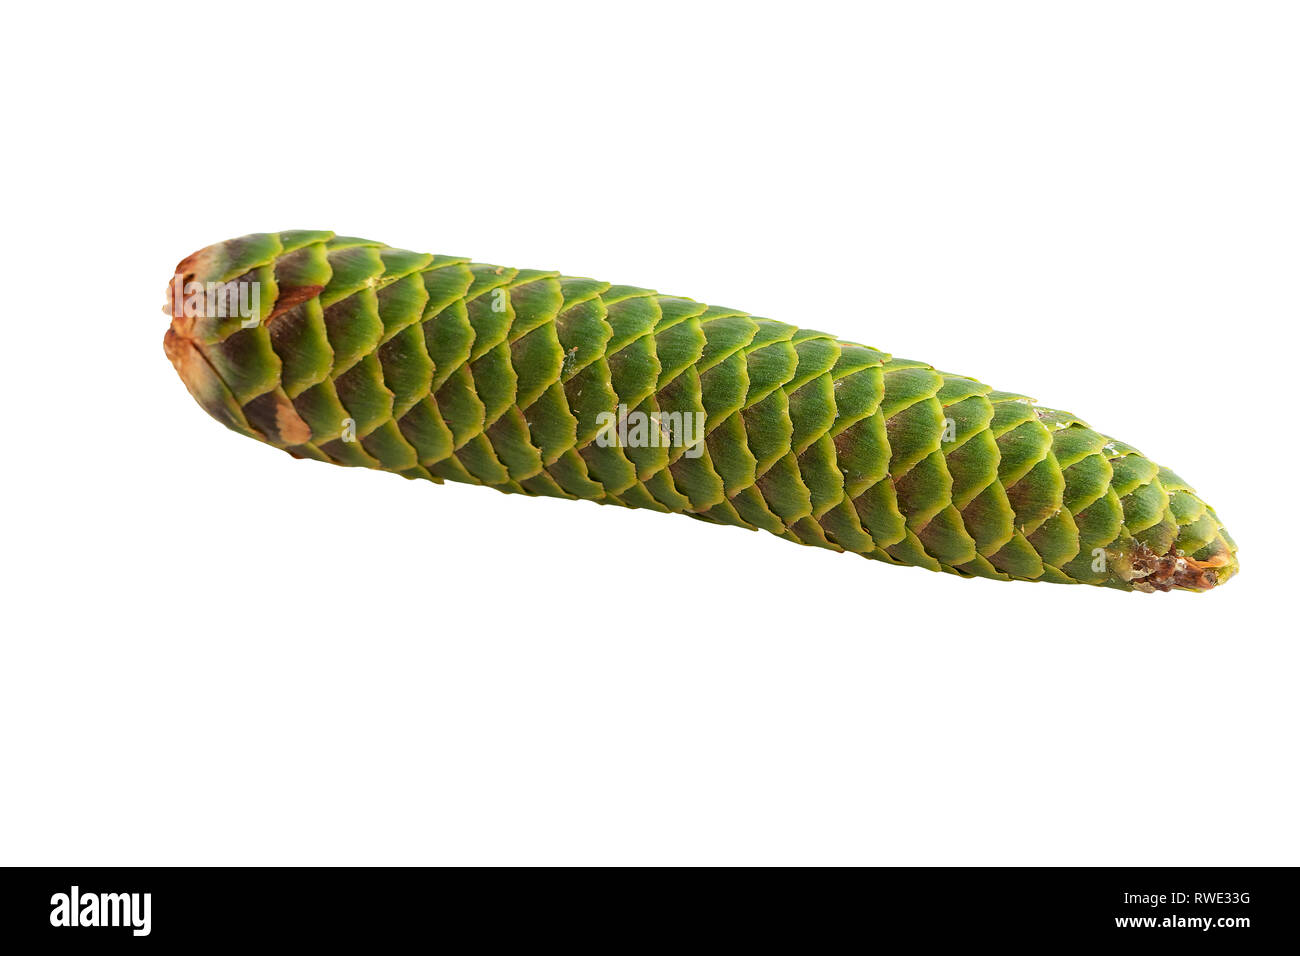 spruce cone green unripe closed isolated on white - Stock Image